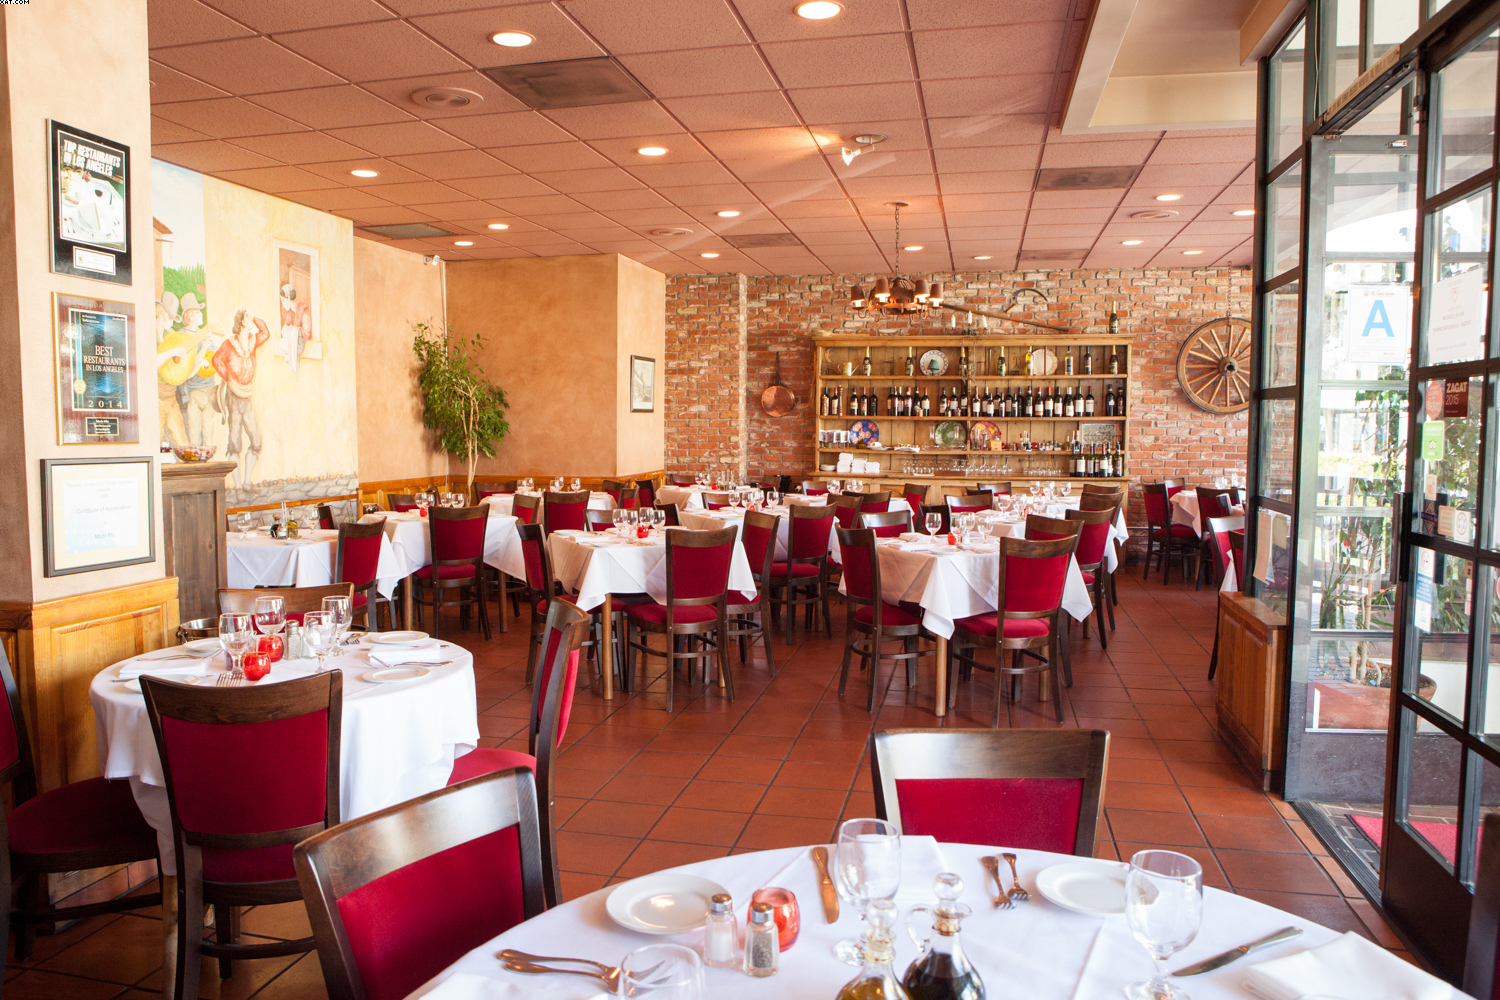 Modo Mio-An Italian Restaurant with a French owner and a Mexican Chef